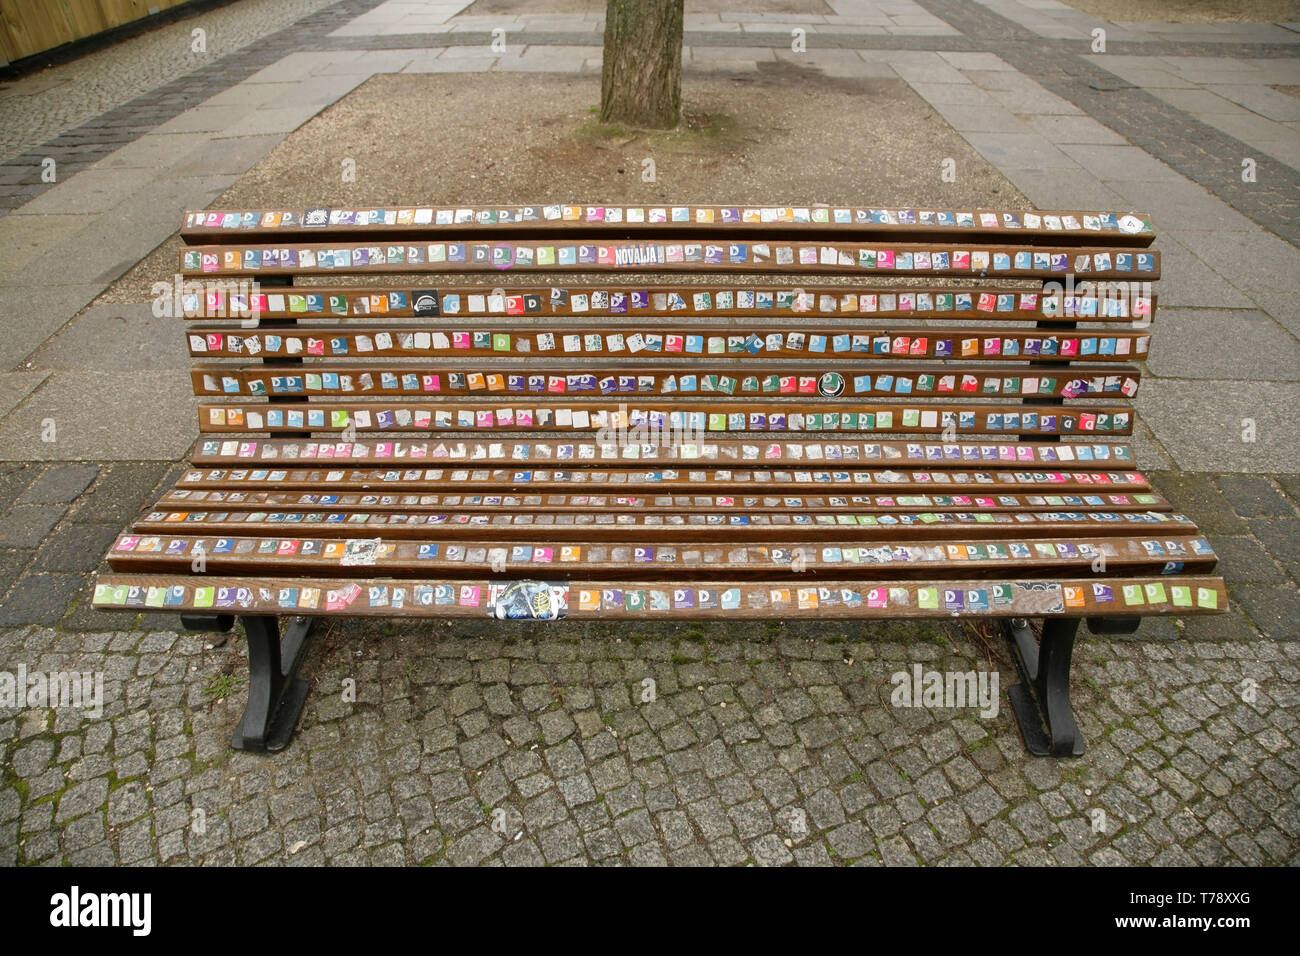 Awesome Wooden Bench Covered With Lots Of Multi Coloured Stickers Lamtechconsult Wood Chair Design Ideas Lamtechconsultcom